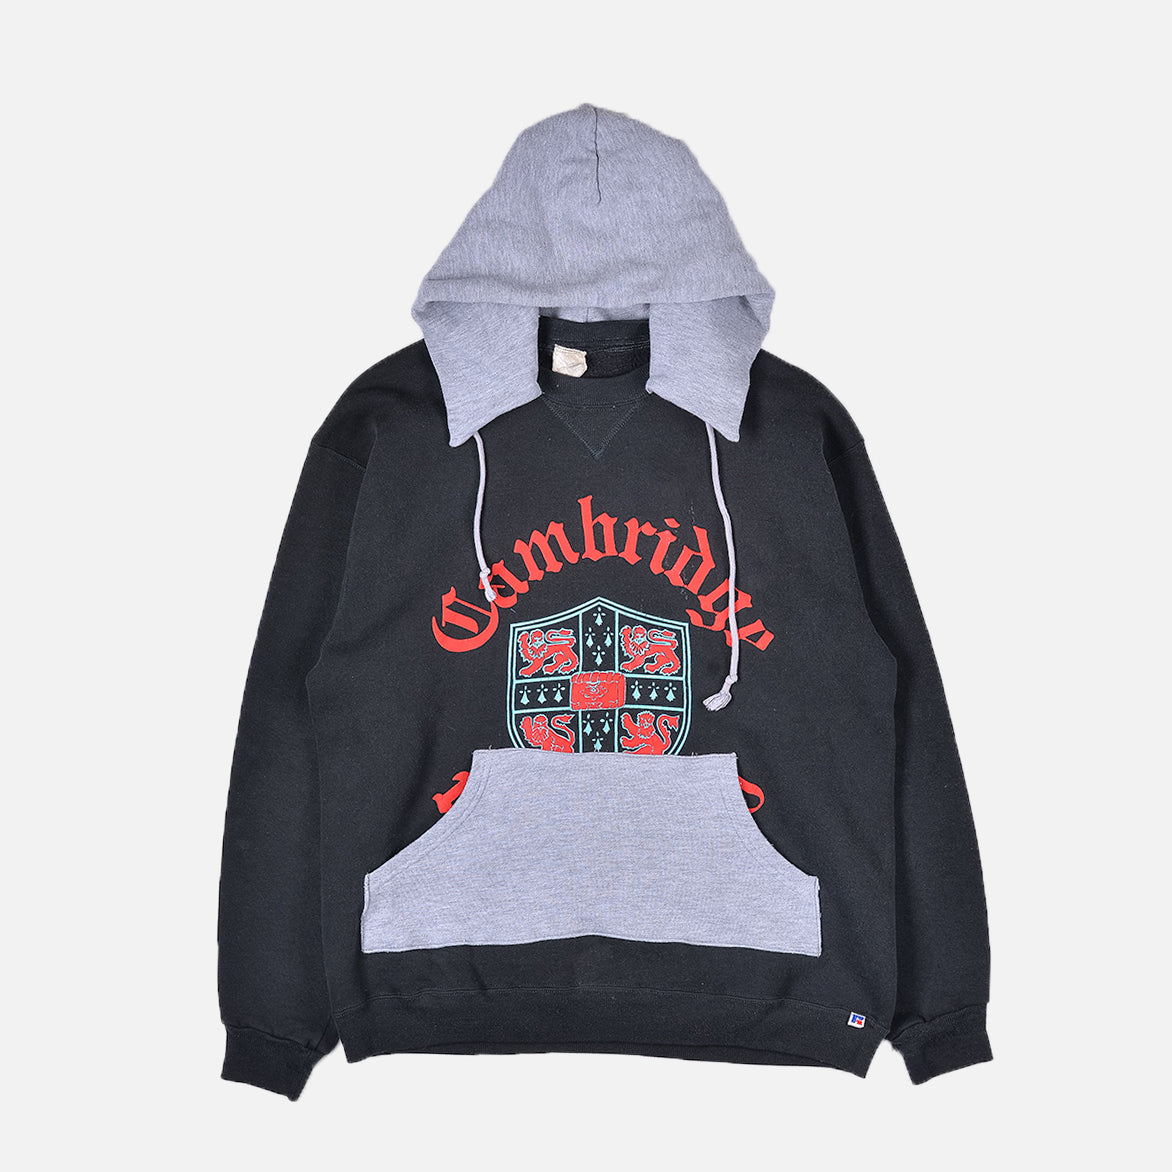 CAMBRIDGE RECONSTRUCT HOODIE - MEDIUM